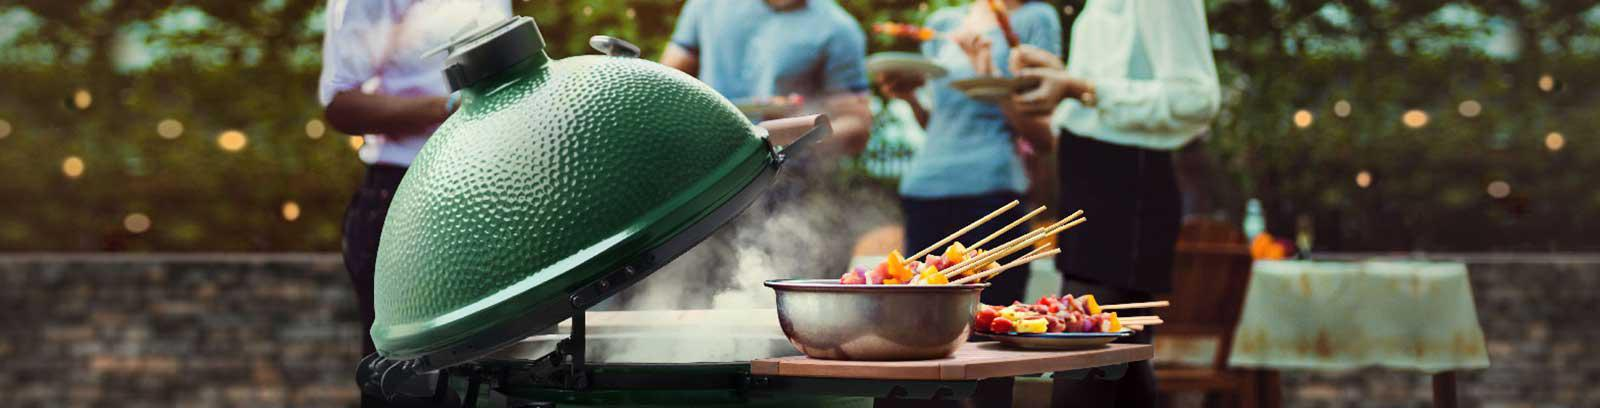 Big Green Egg Grilling Utensils + Tools